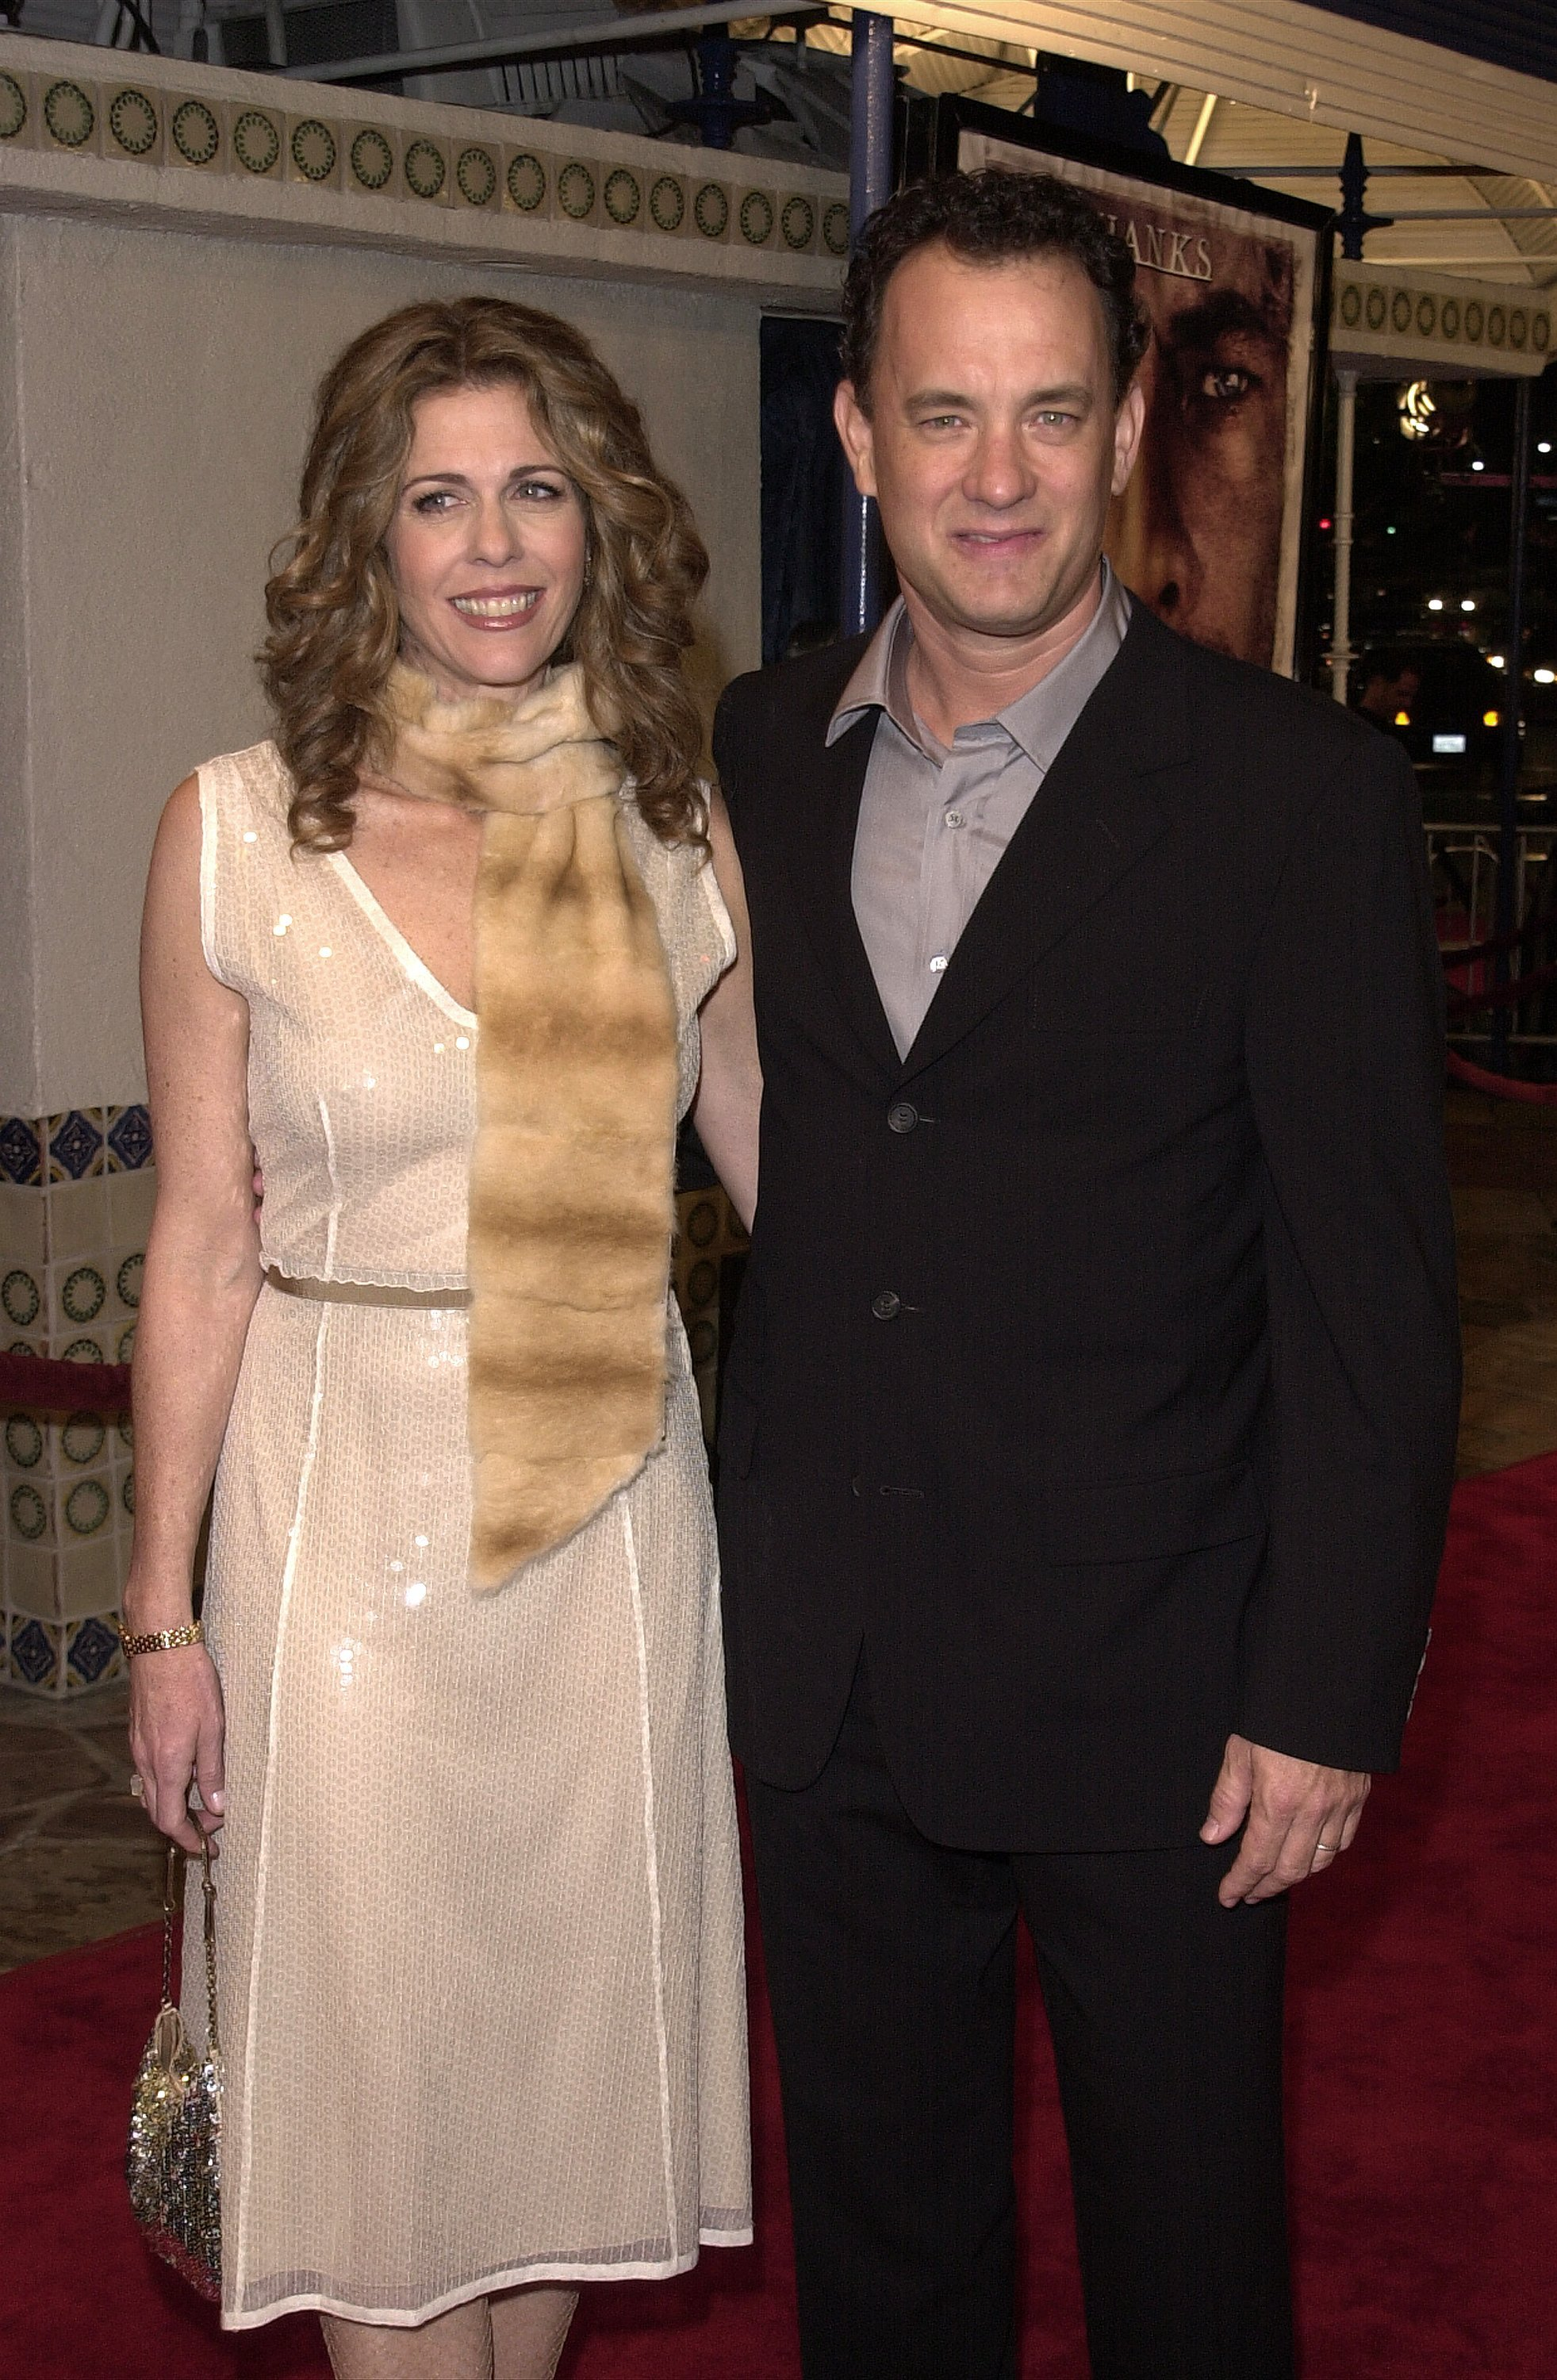 """Tom Hanks and Rita Wilson attend the premiere of his film """"Cast Away"""" December 7, 2000, in Los Angeles, CA. 